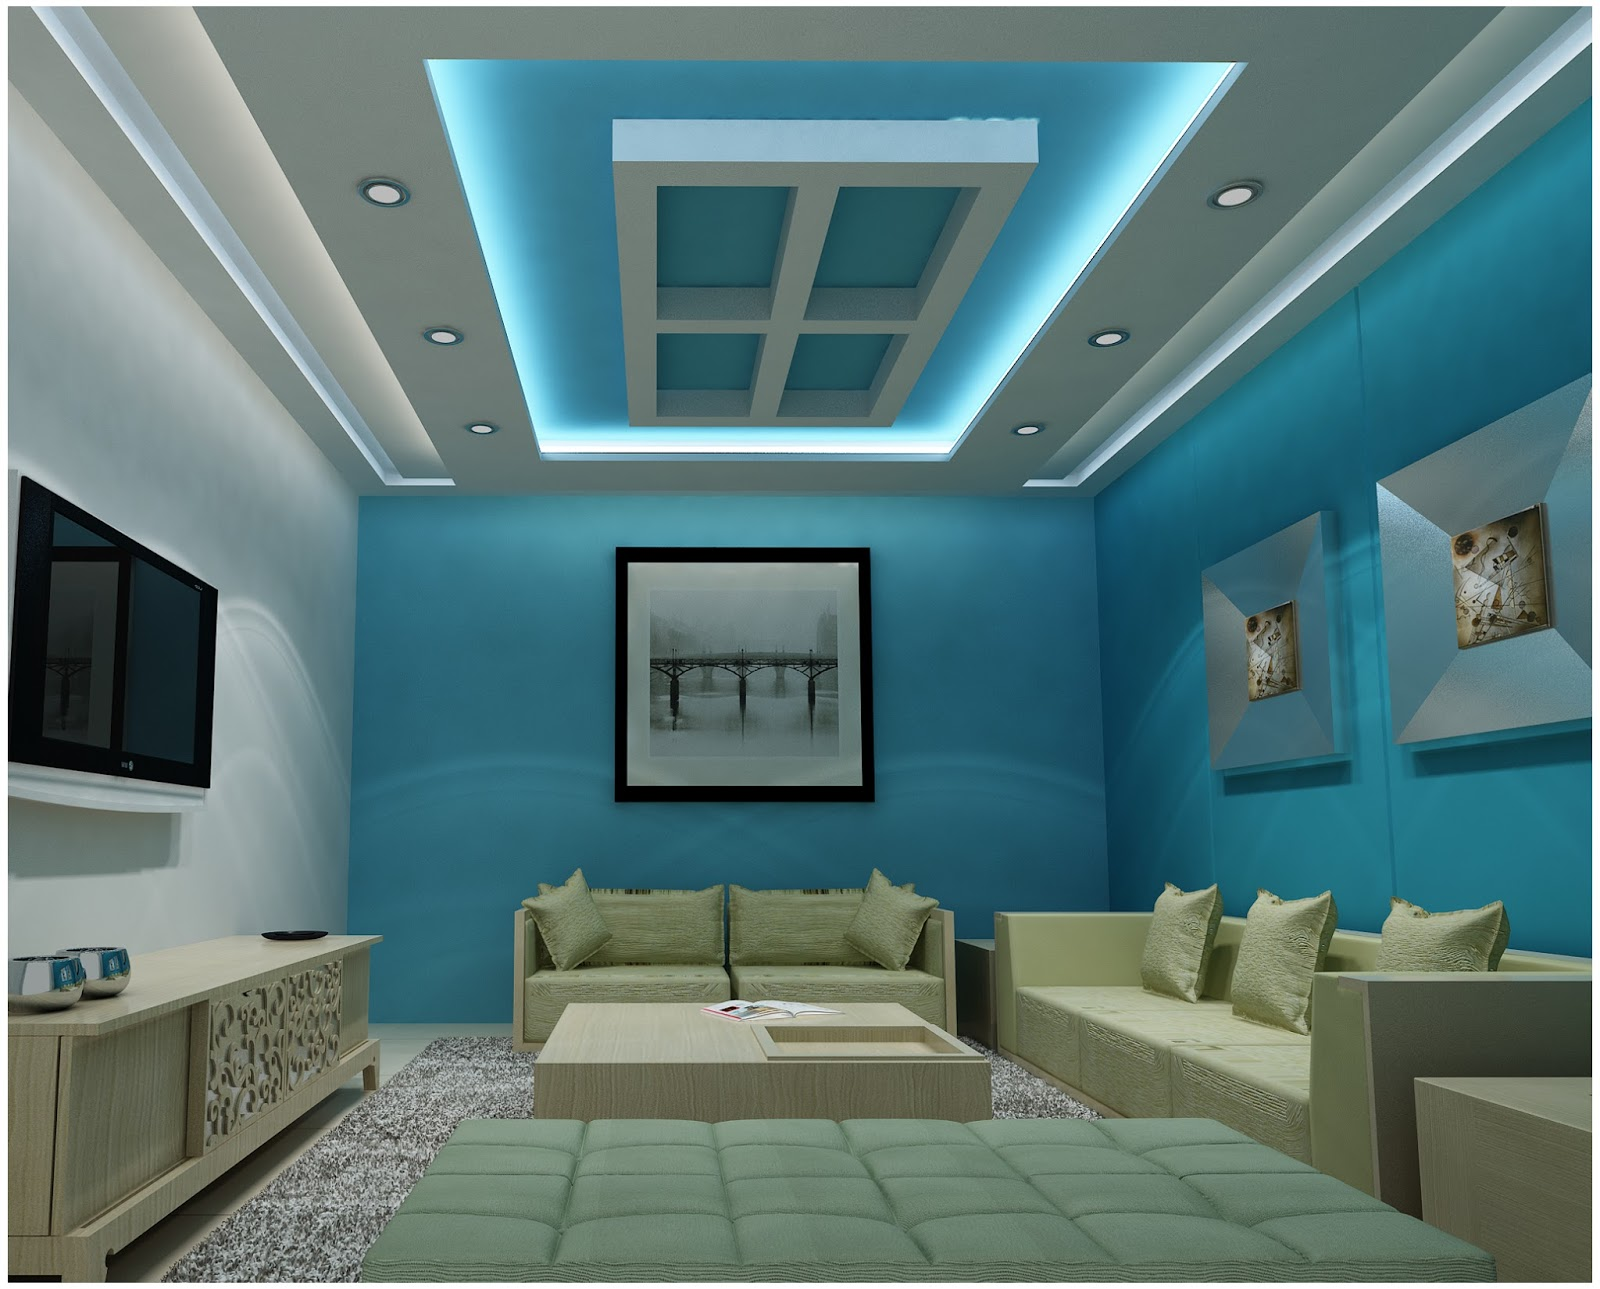 Plaster ceiling luxtury joy studio design gallery best for Modern ceiling design 2017